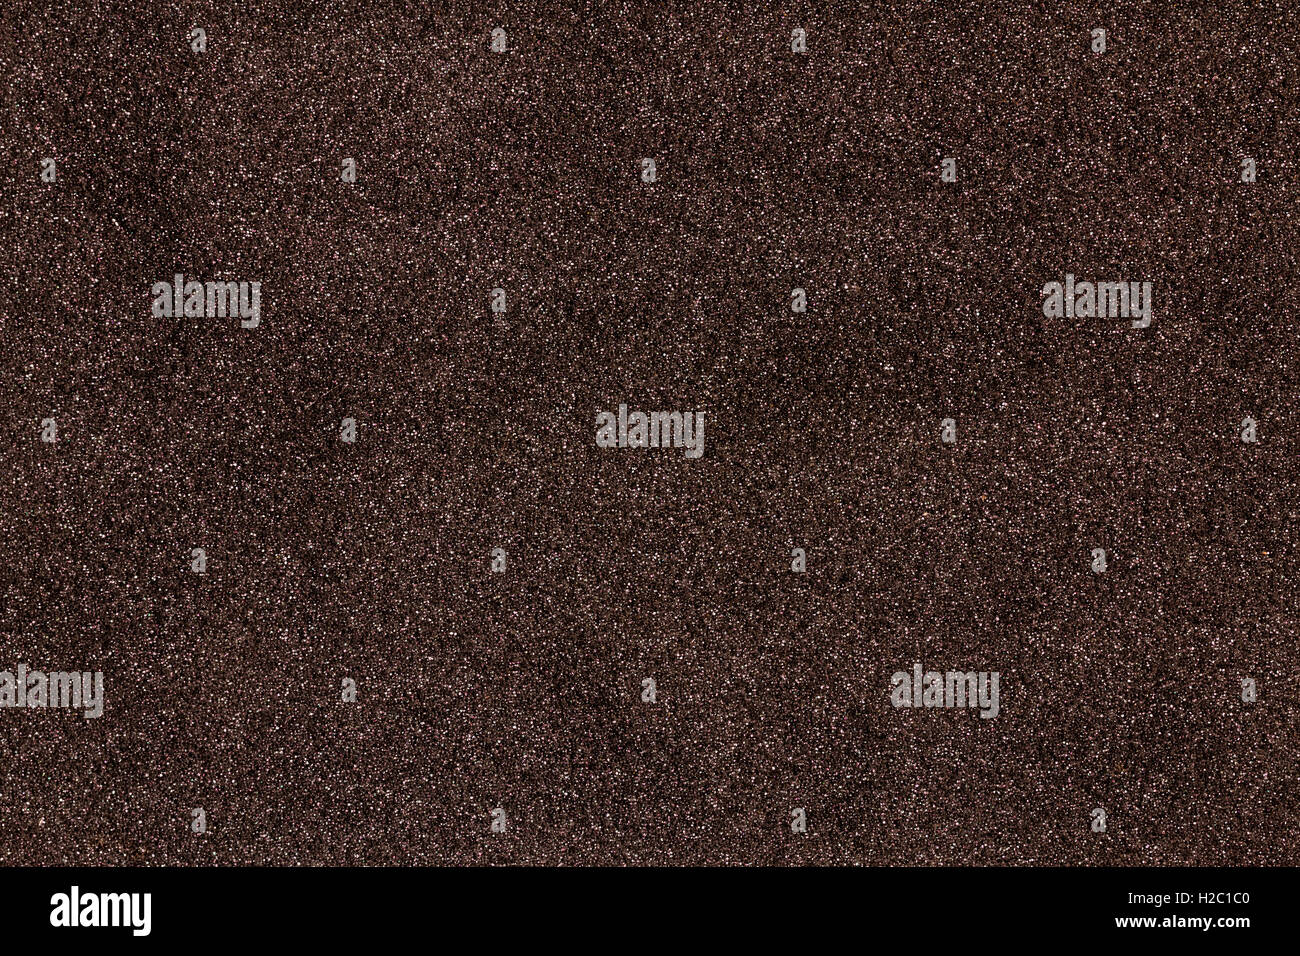 Background Consisting Of Gray Material Fills The Entire Screen Stock Photo 121966432 Alamy